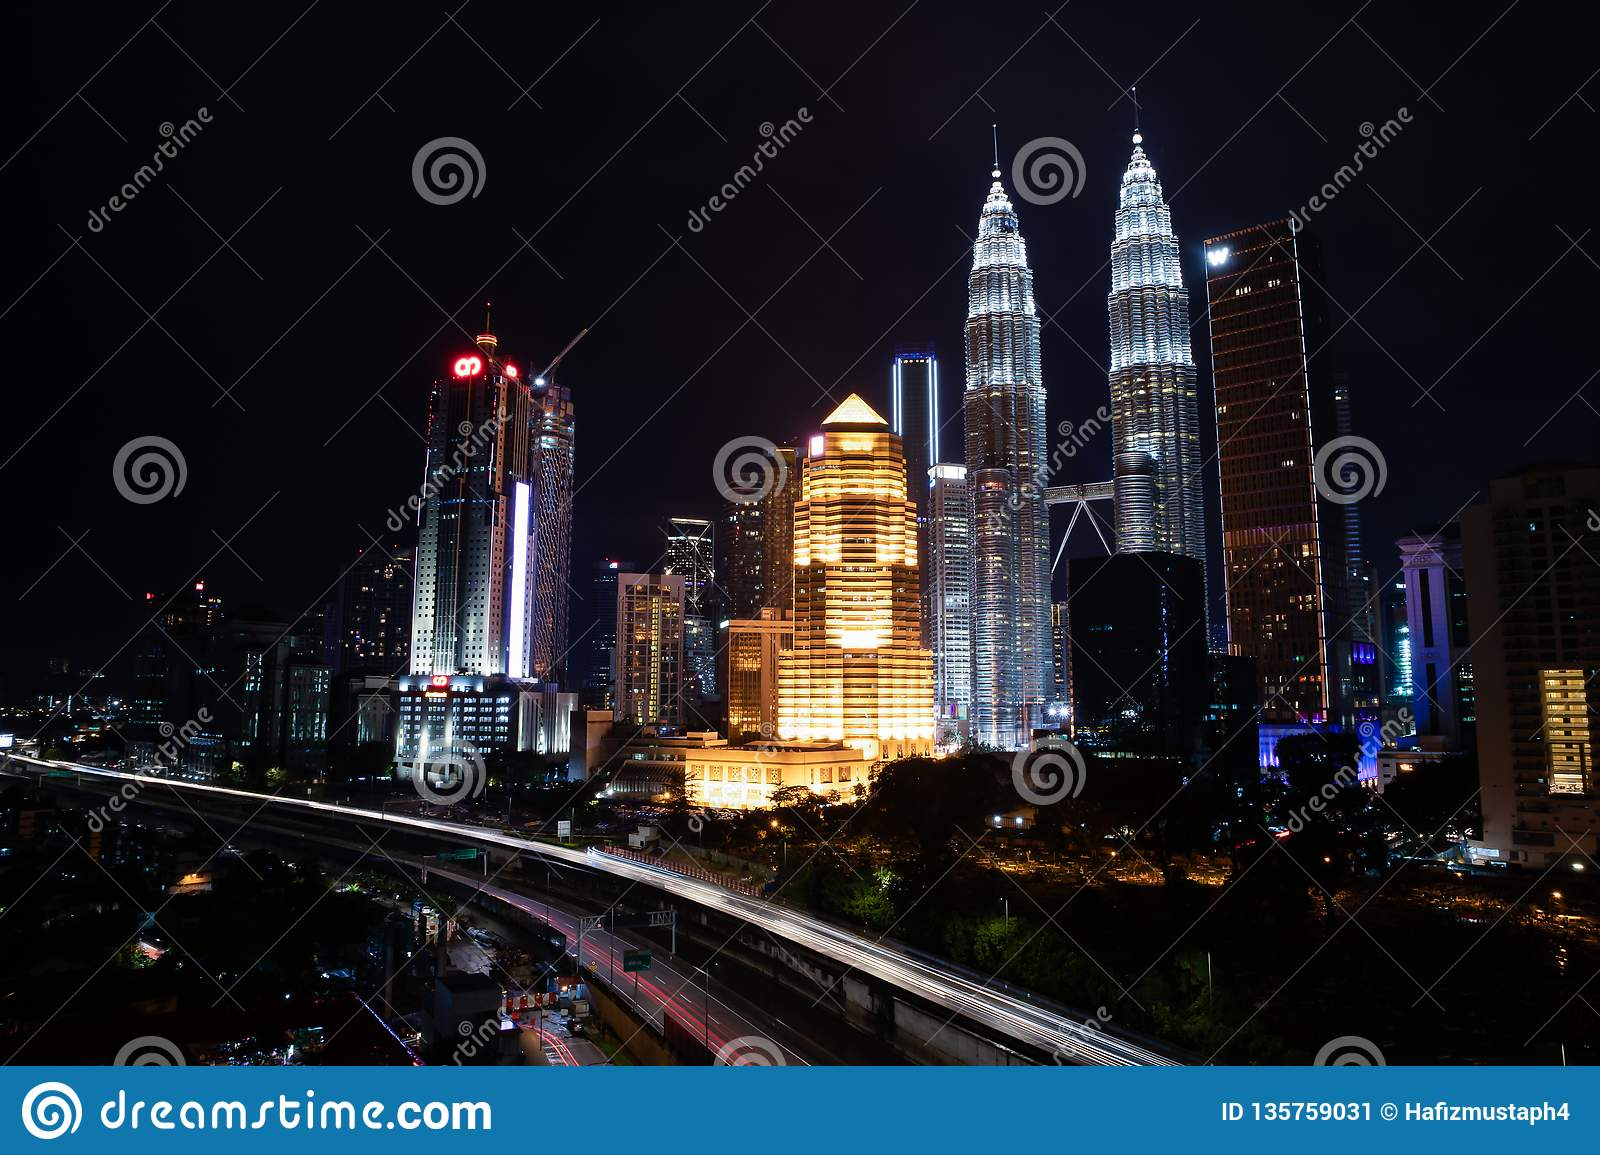 Kuala Lumpur City Center skyline at night view